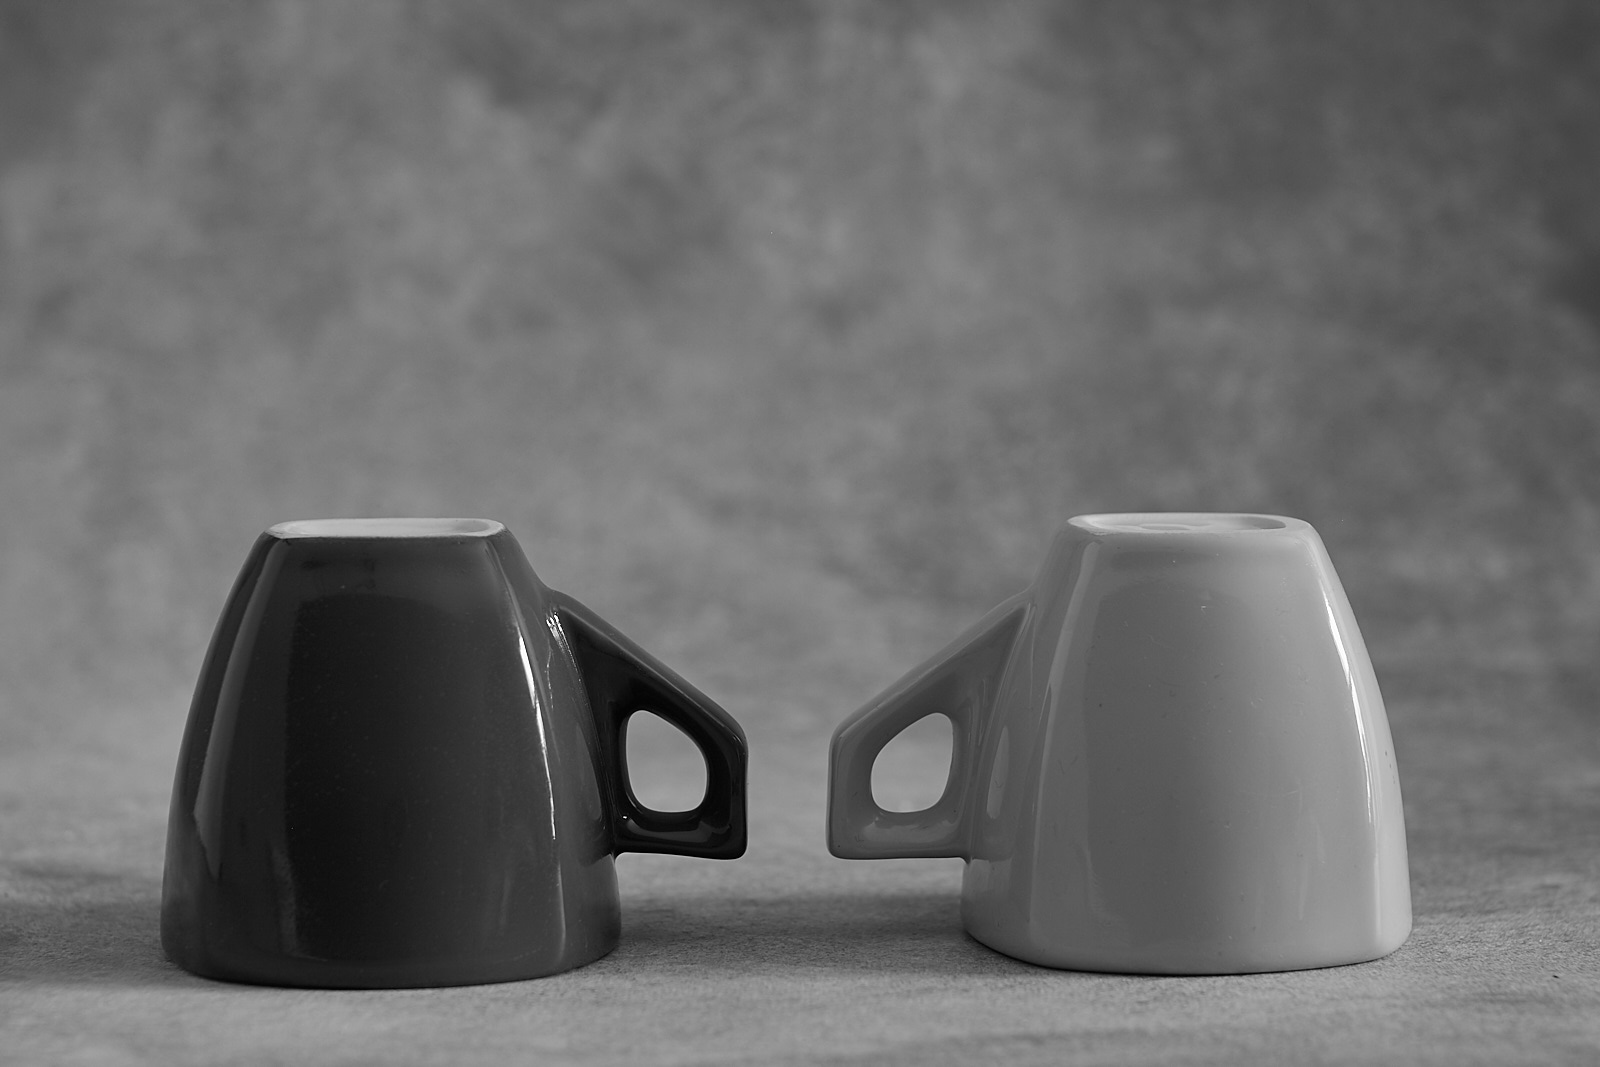 The Two Cups0229-1600w